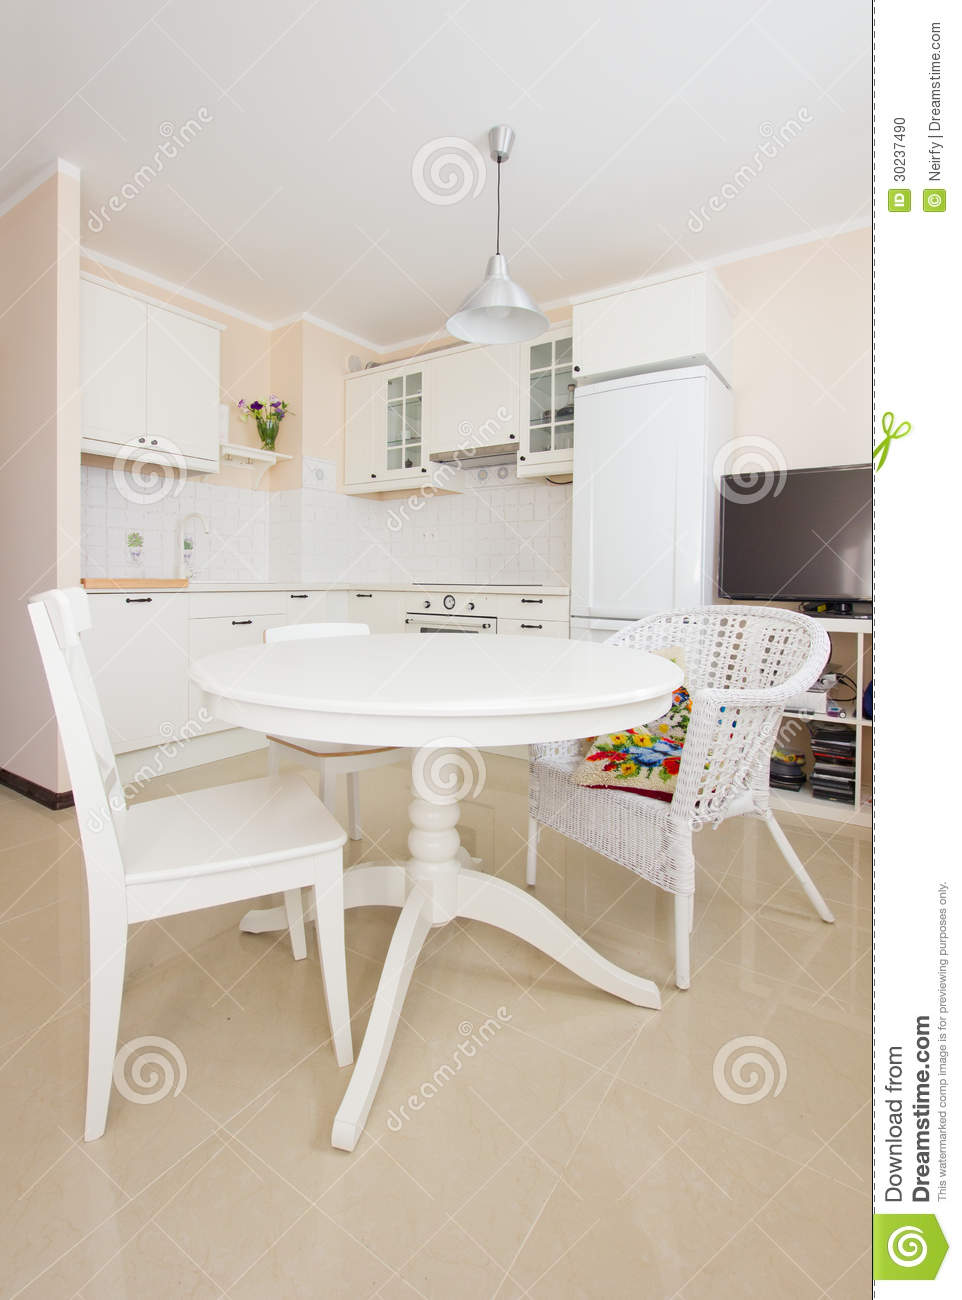 cuisine blanche de rustique avec la table dinning photo stock image 30237490. Black Bedroom Furniture Sets. Home Design Ideas